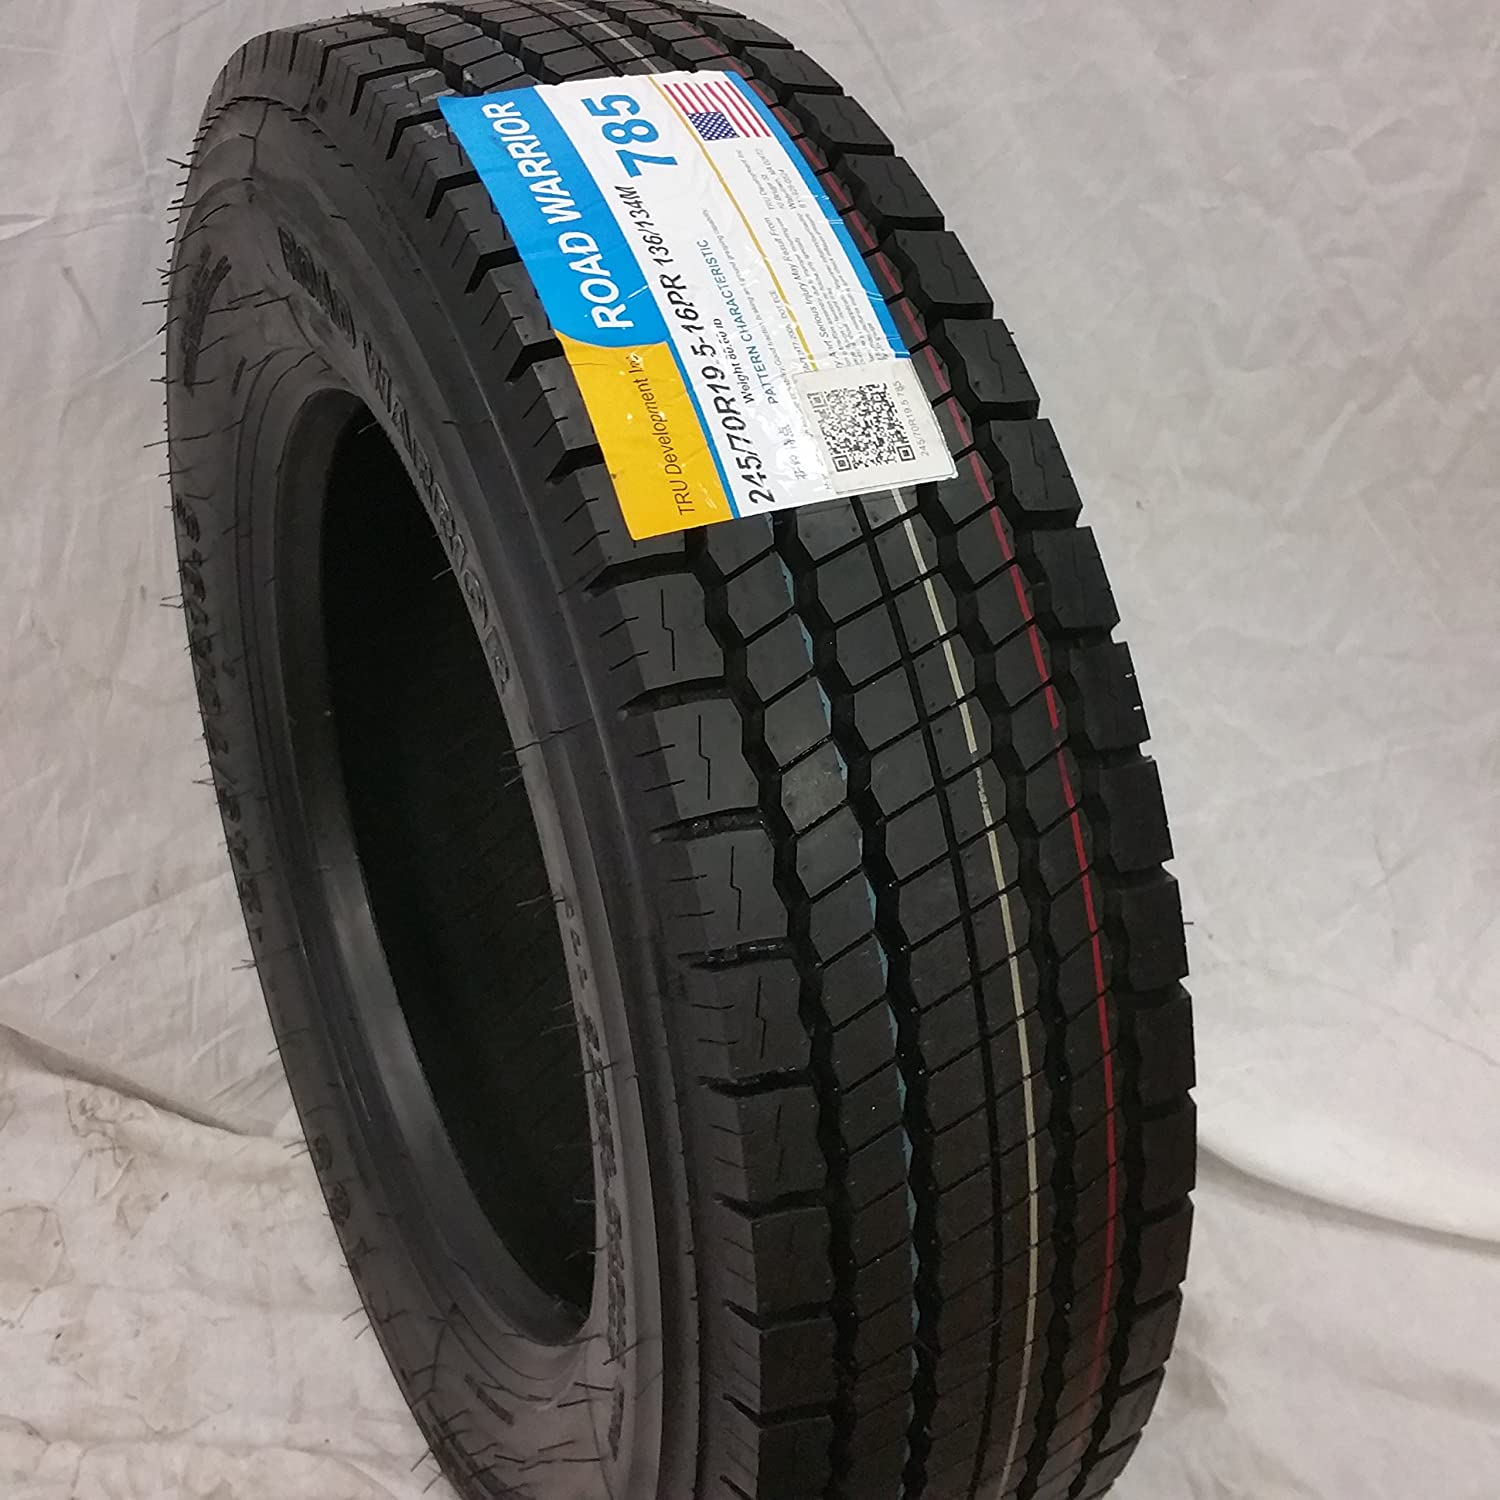 (6-TIRES) 245/70R19.5 H/16 NEW ROAD WARRIOR ALL POSITIONS TIRES 16 PLY 24570195 ROAD WARRIOR TIRES